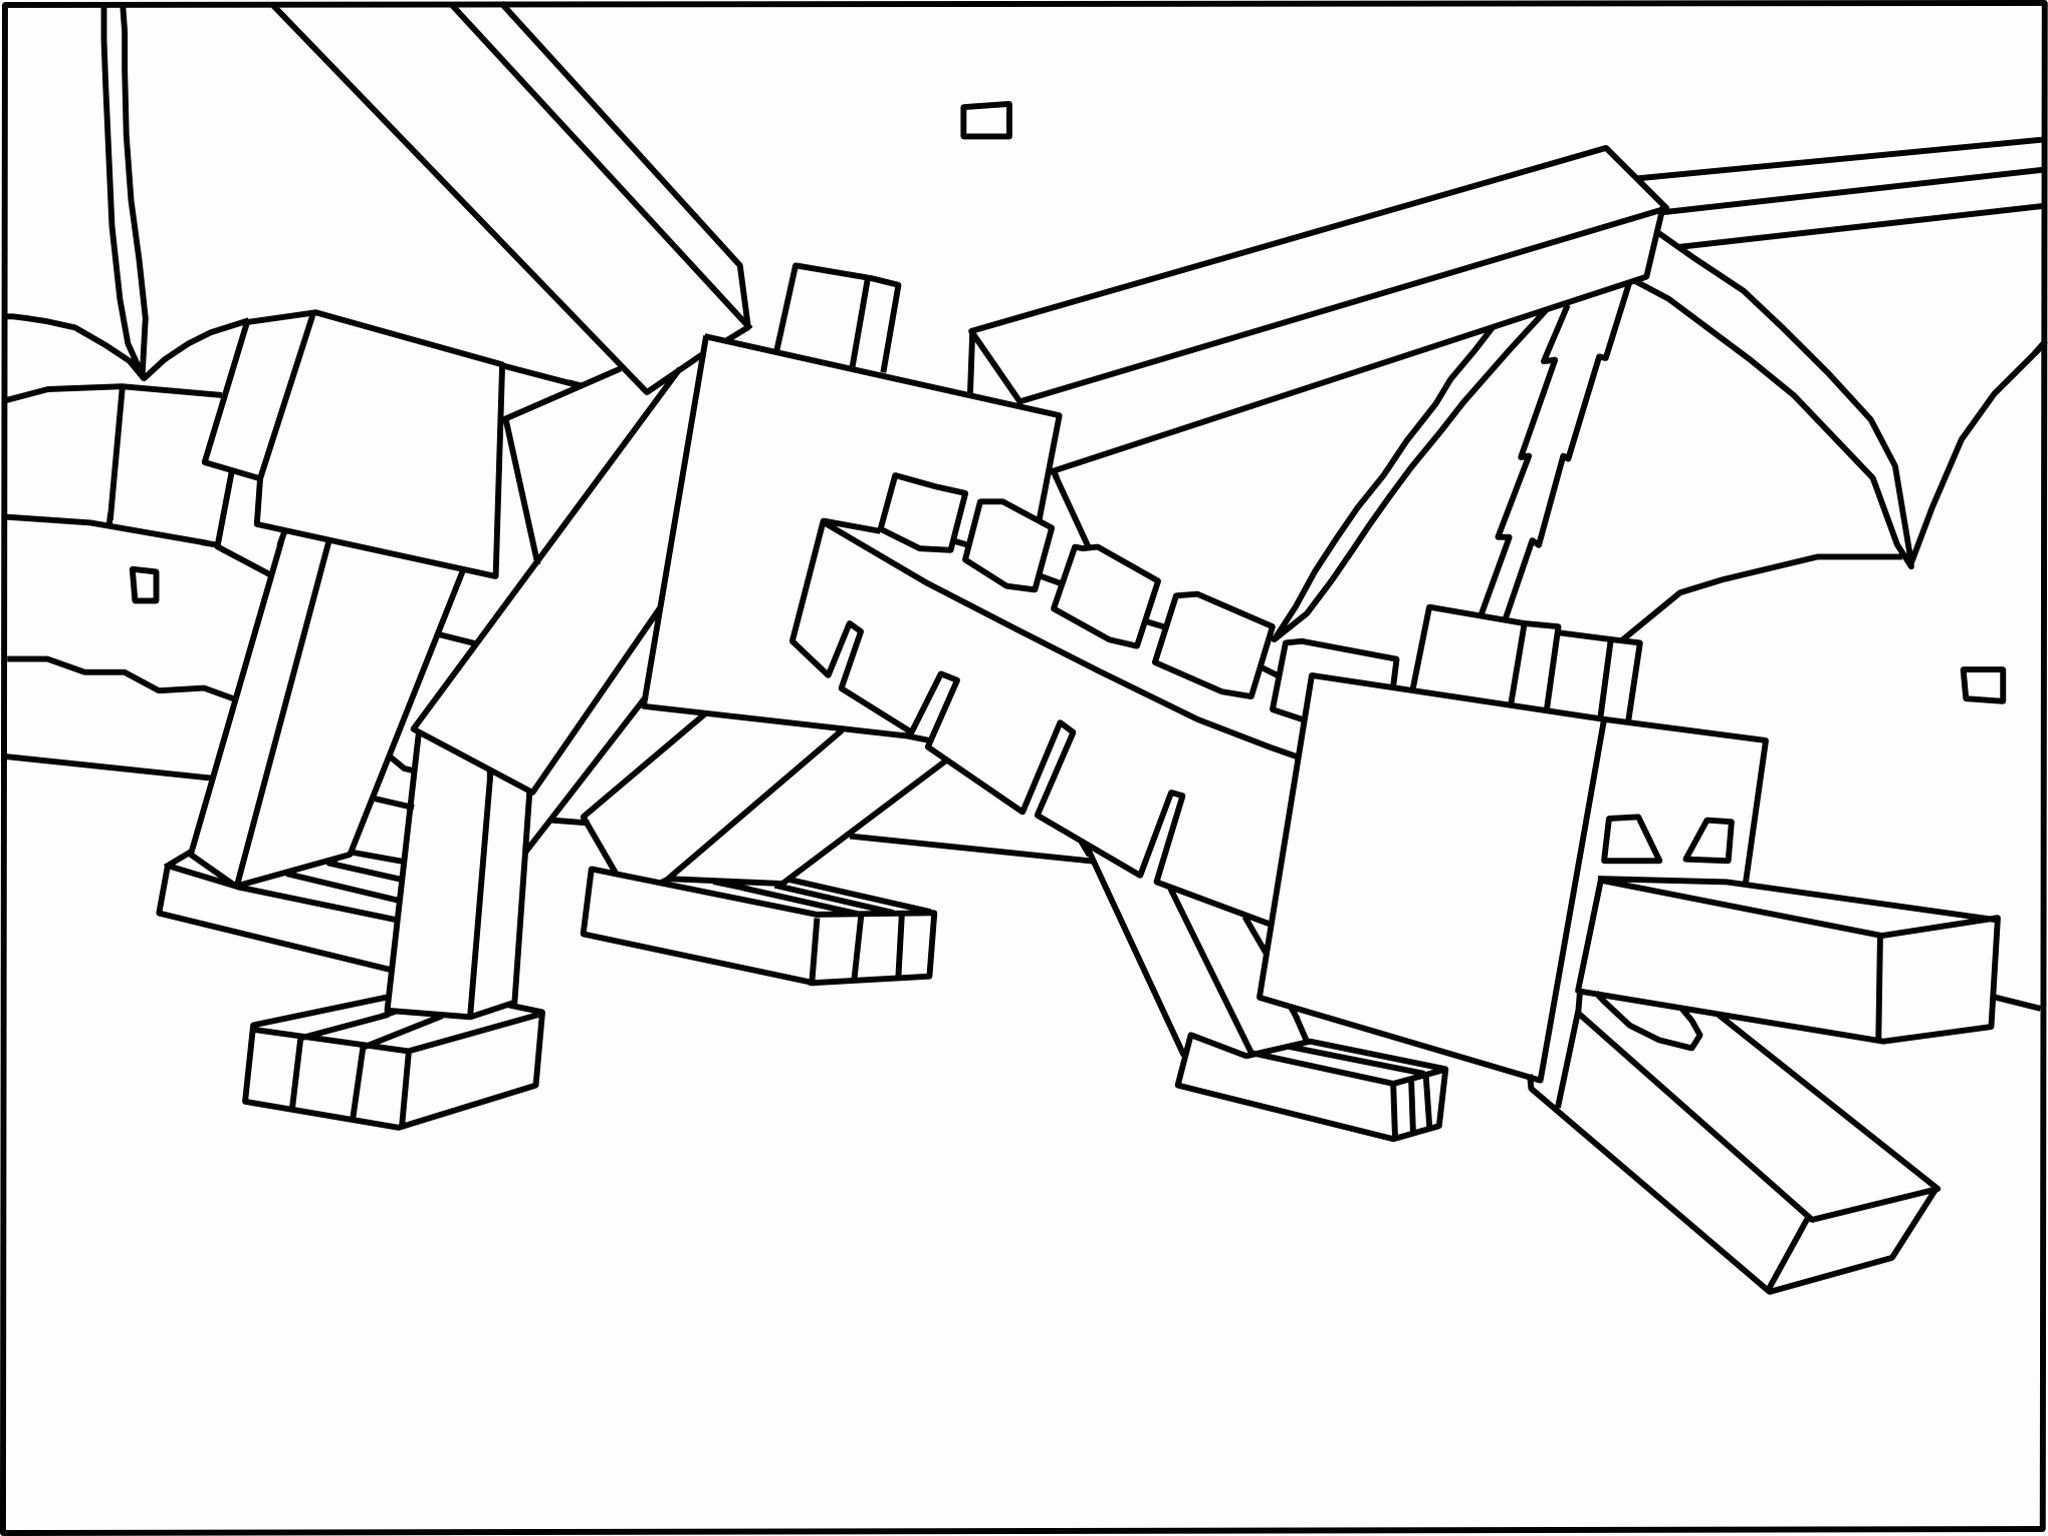 minecraft ender dragon coloring sheet minecraft drawing game at getdrawings free download dragon minecraft coloring ender sheet